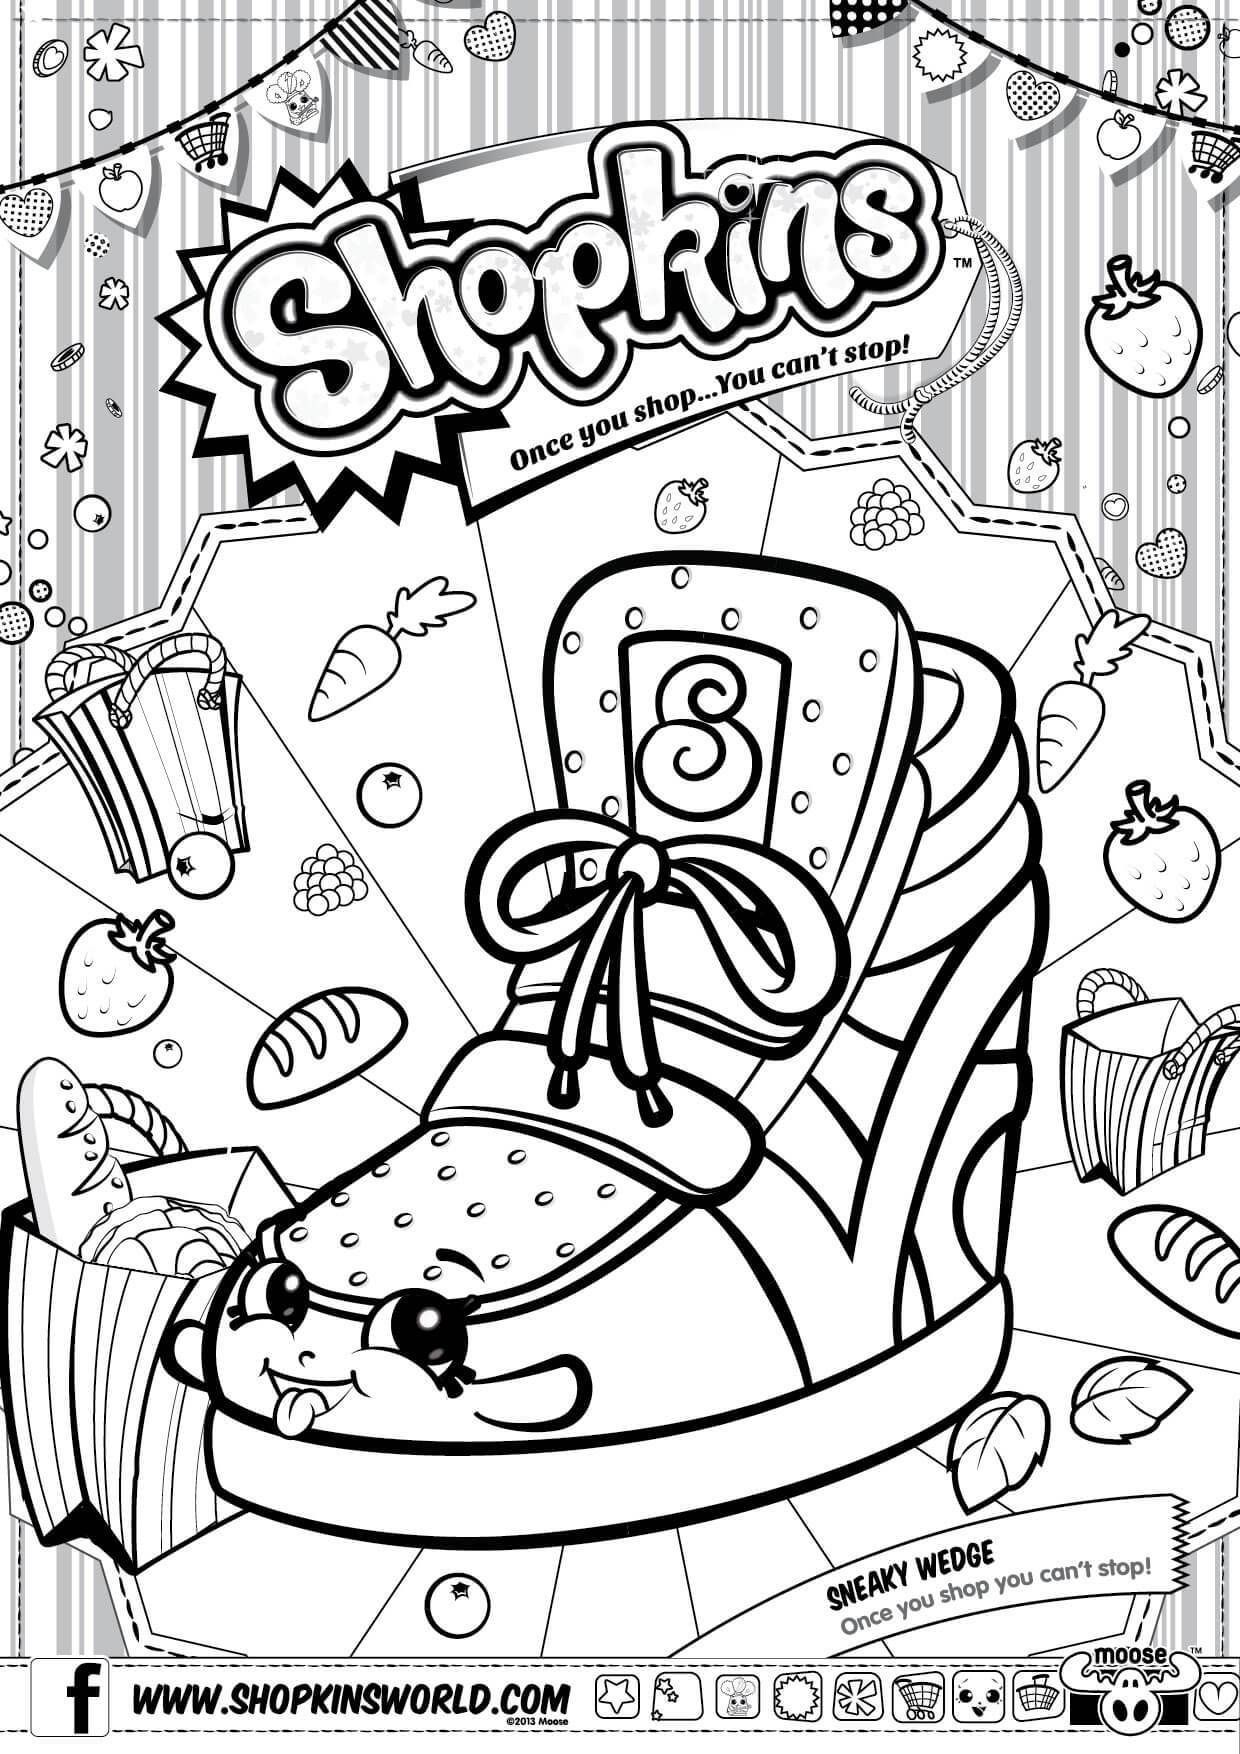 Shopkins Coloring Pages Season 2 Sneaky Wedge Party